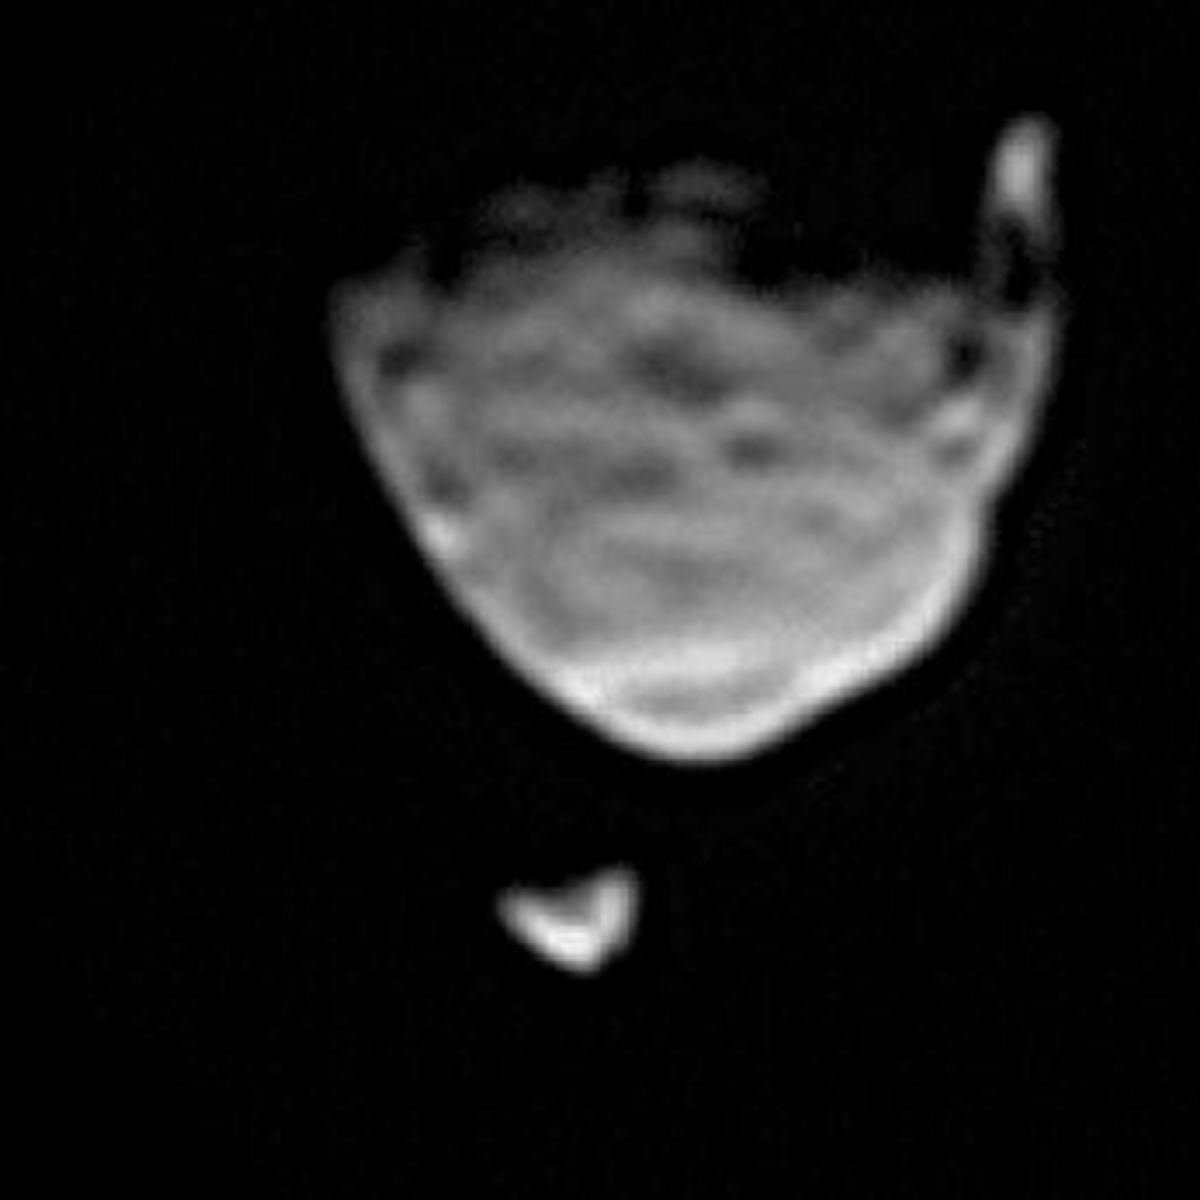 curiosity_phobos_deimos.jpg.CROP.rectangle-large.jpg